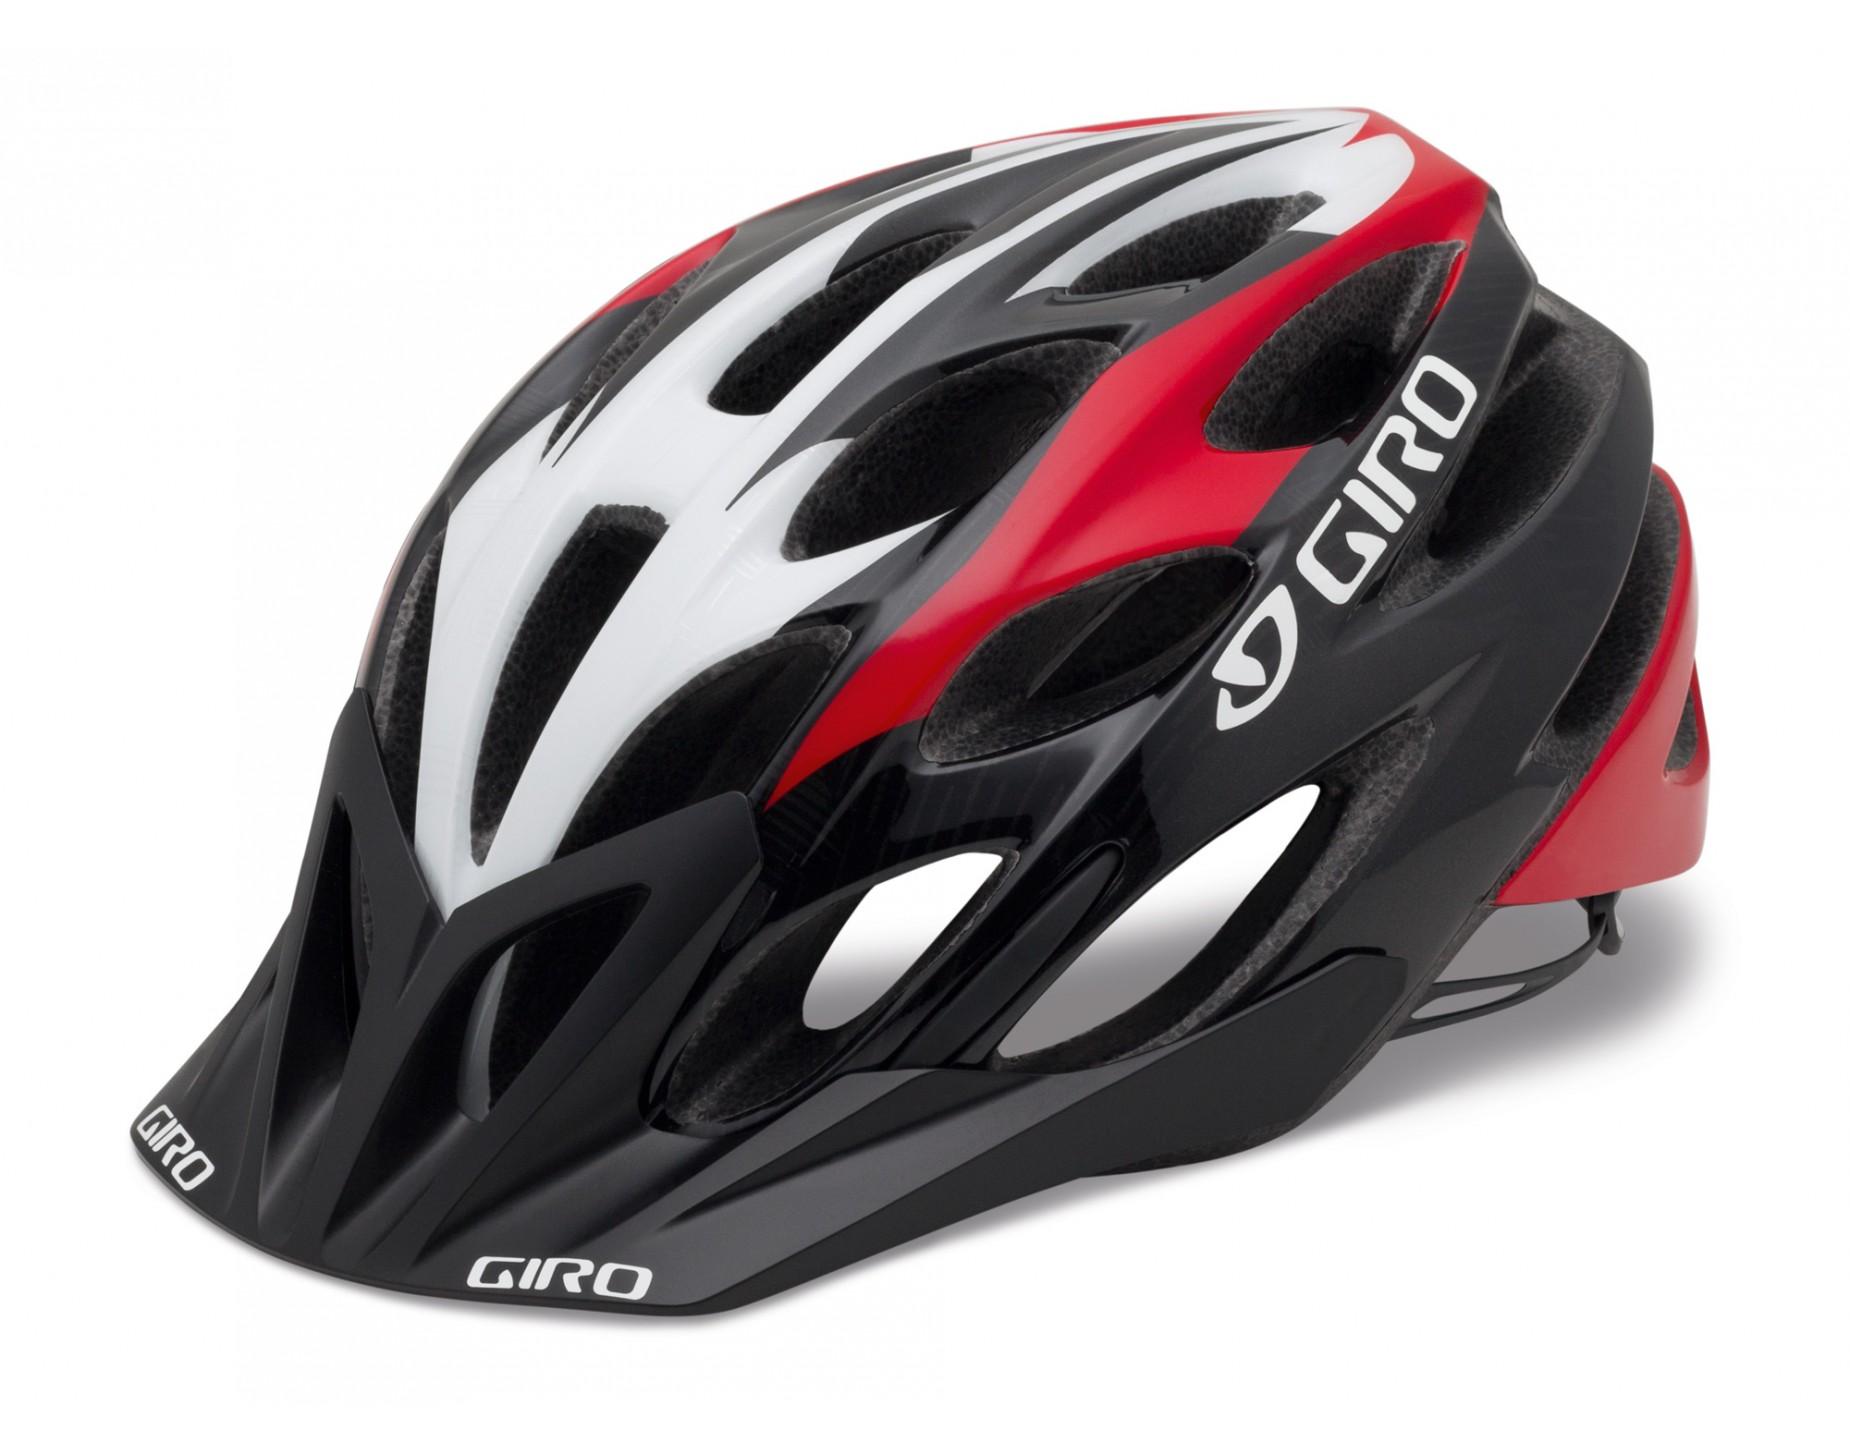 giro phase mtb helmet everything you need rose bikes. Black Bedroom Furniture Sets. Home Design Ideas